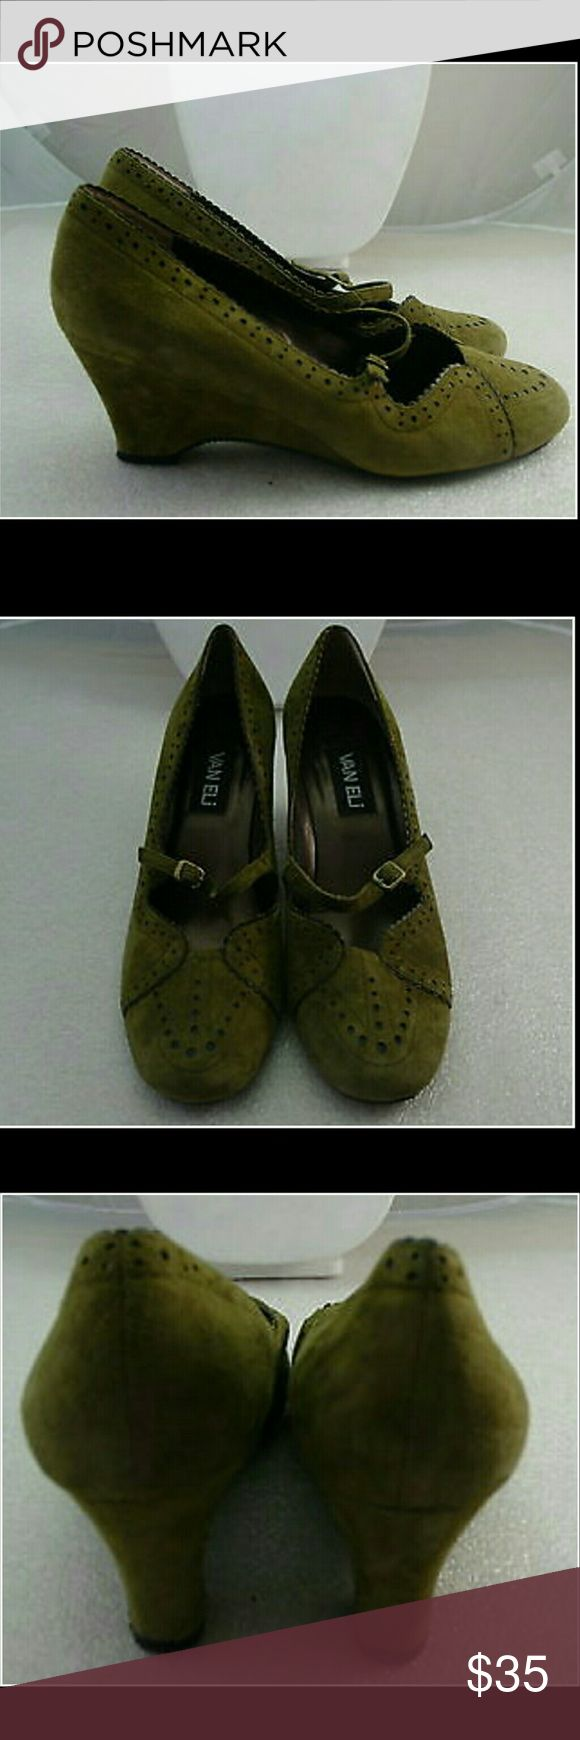 Vaneli Suede Olive Green Wedge Mary Jane Shoes 9 Vaneli Suede Olive Green Wedge Mary Jane Shoes. Only worn a few times. Sz. 9 Scalloped Leather design Vaneli Shoes Wedges